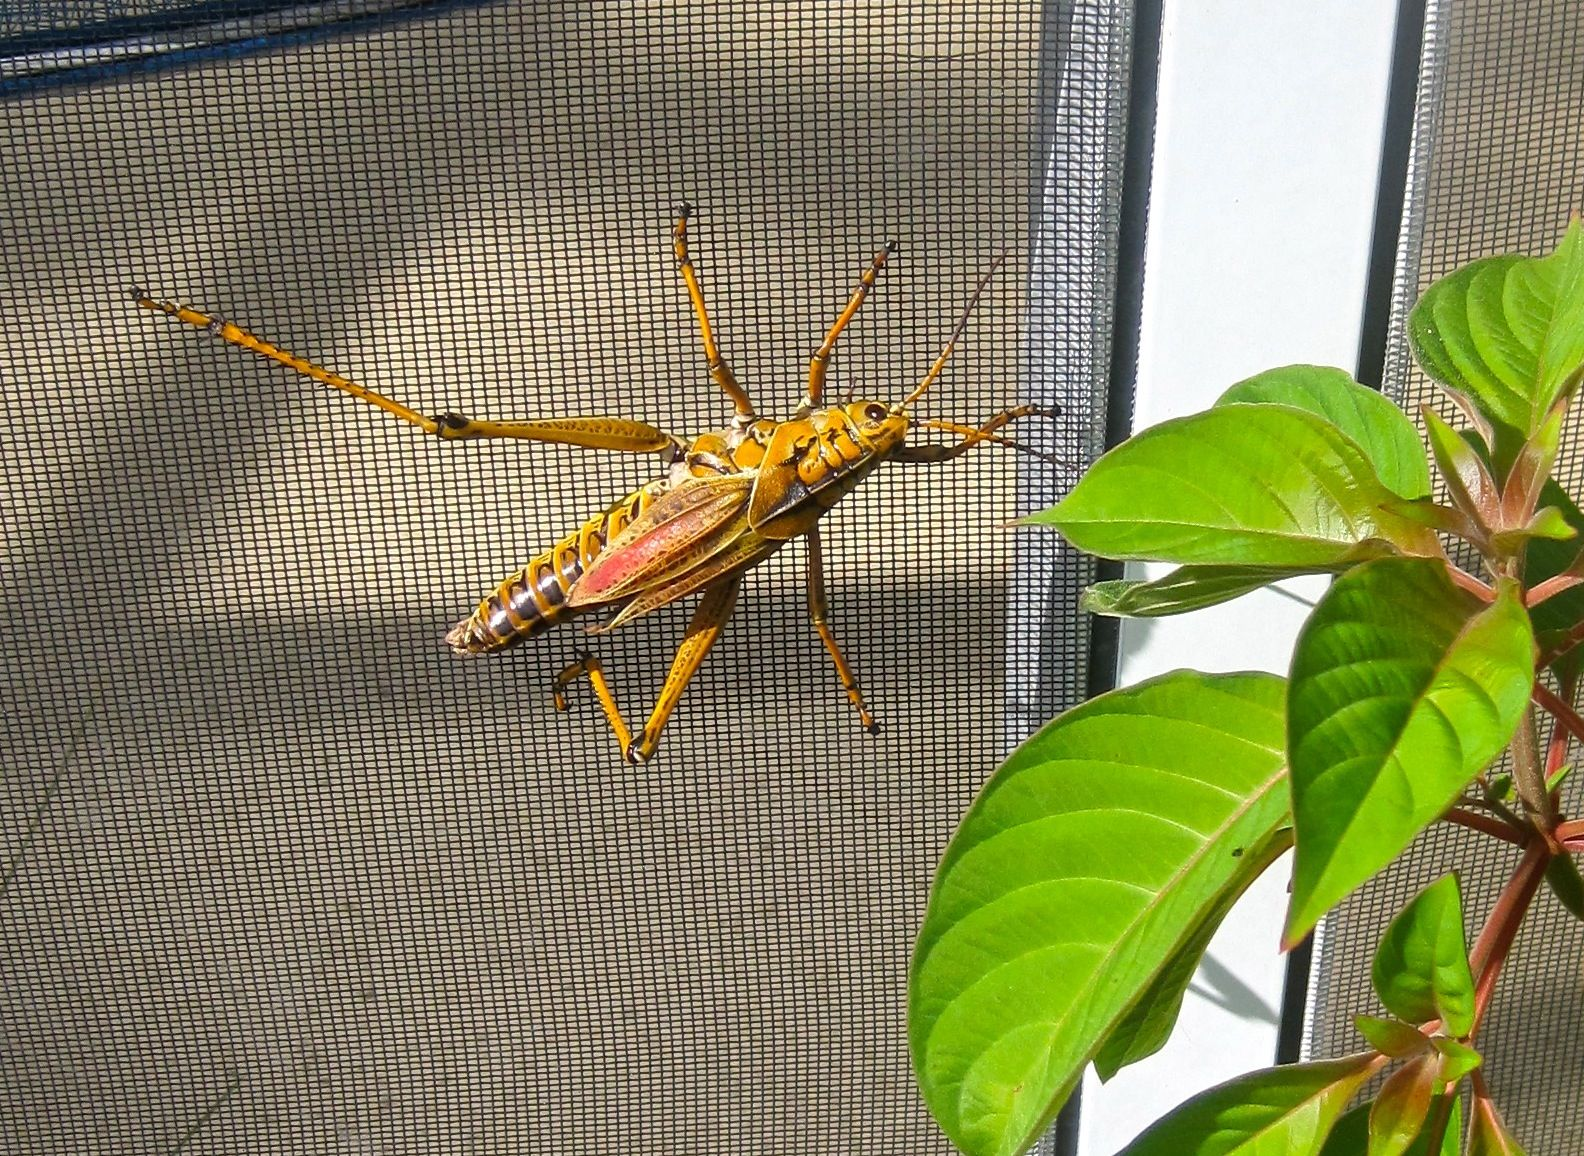 The adult Eastern Lubber Grasshopper can't fly and can barely hop! We'll start seeing more of these this month and in July. They are pretty little works of art, so just leave them alone if they aren't bothering your plants.